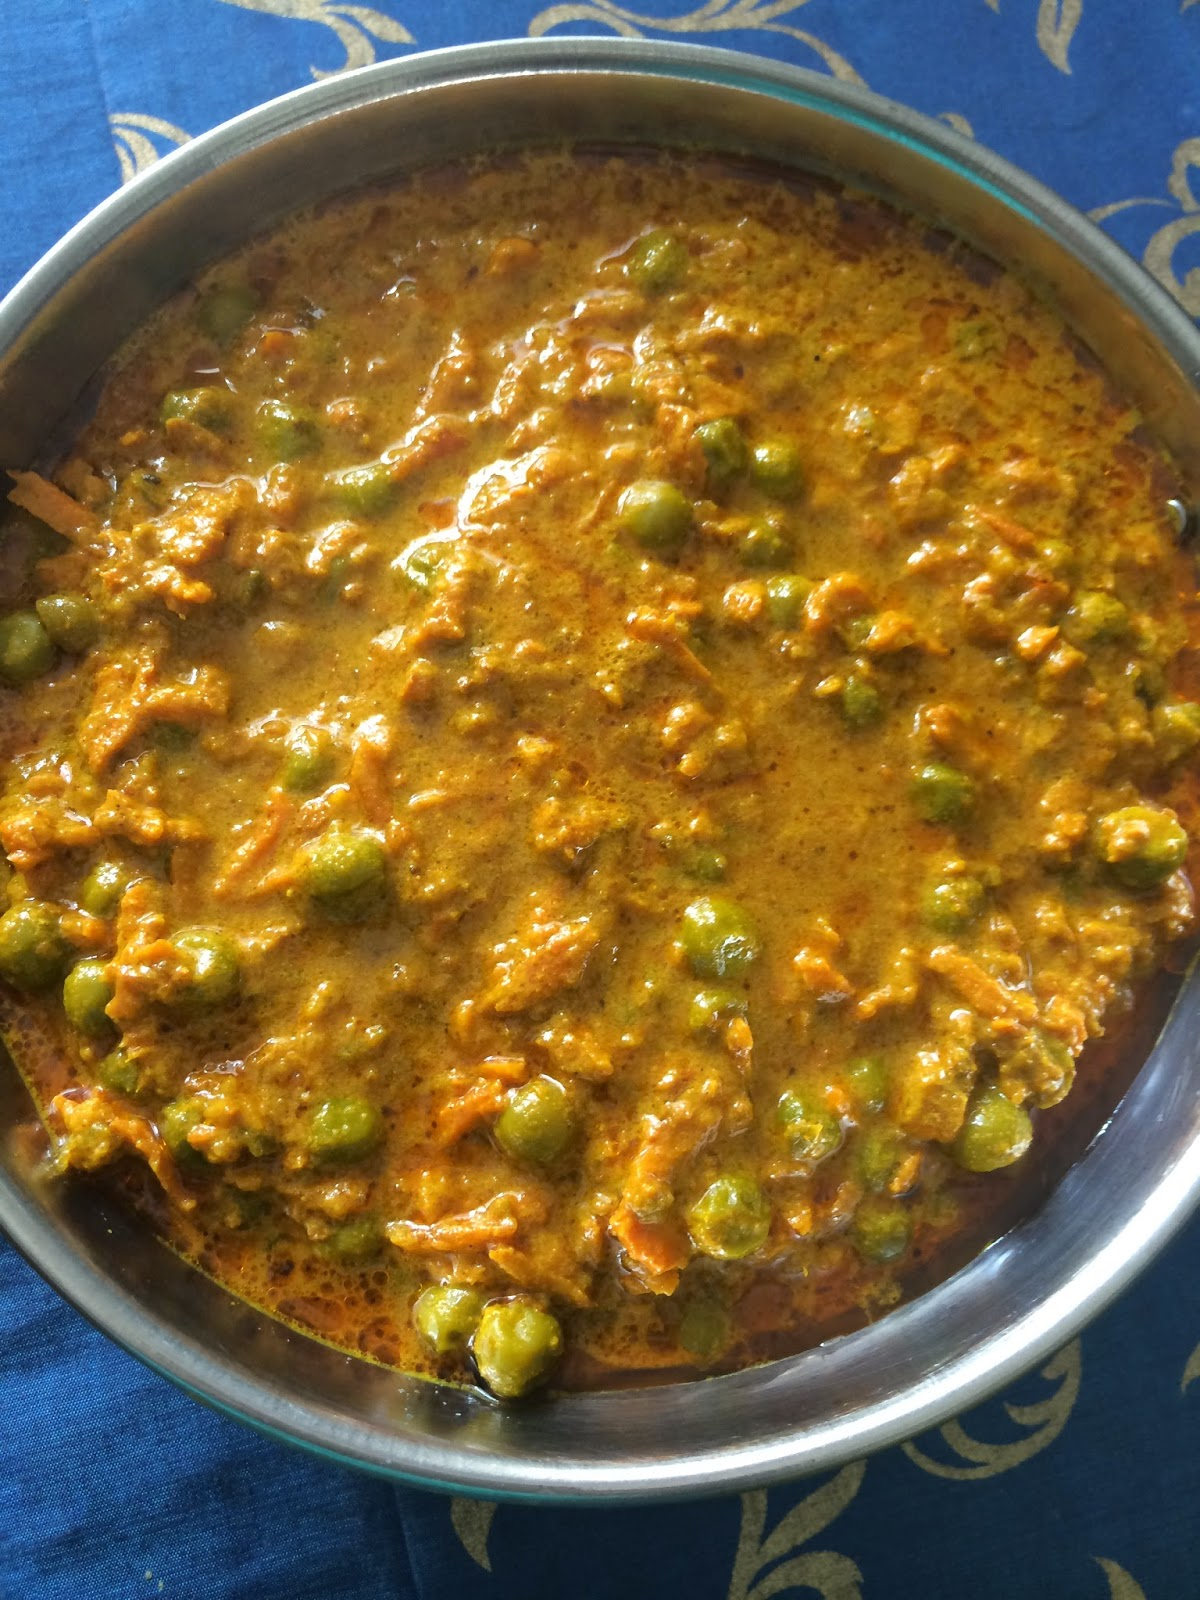 ... leaves and serve with chapati or riceor any bread of your choice